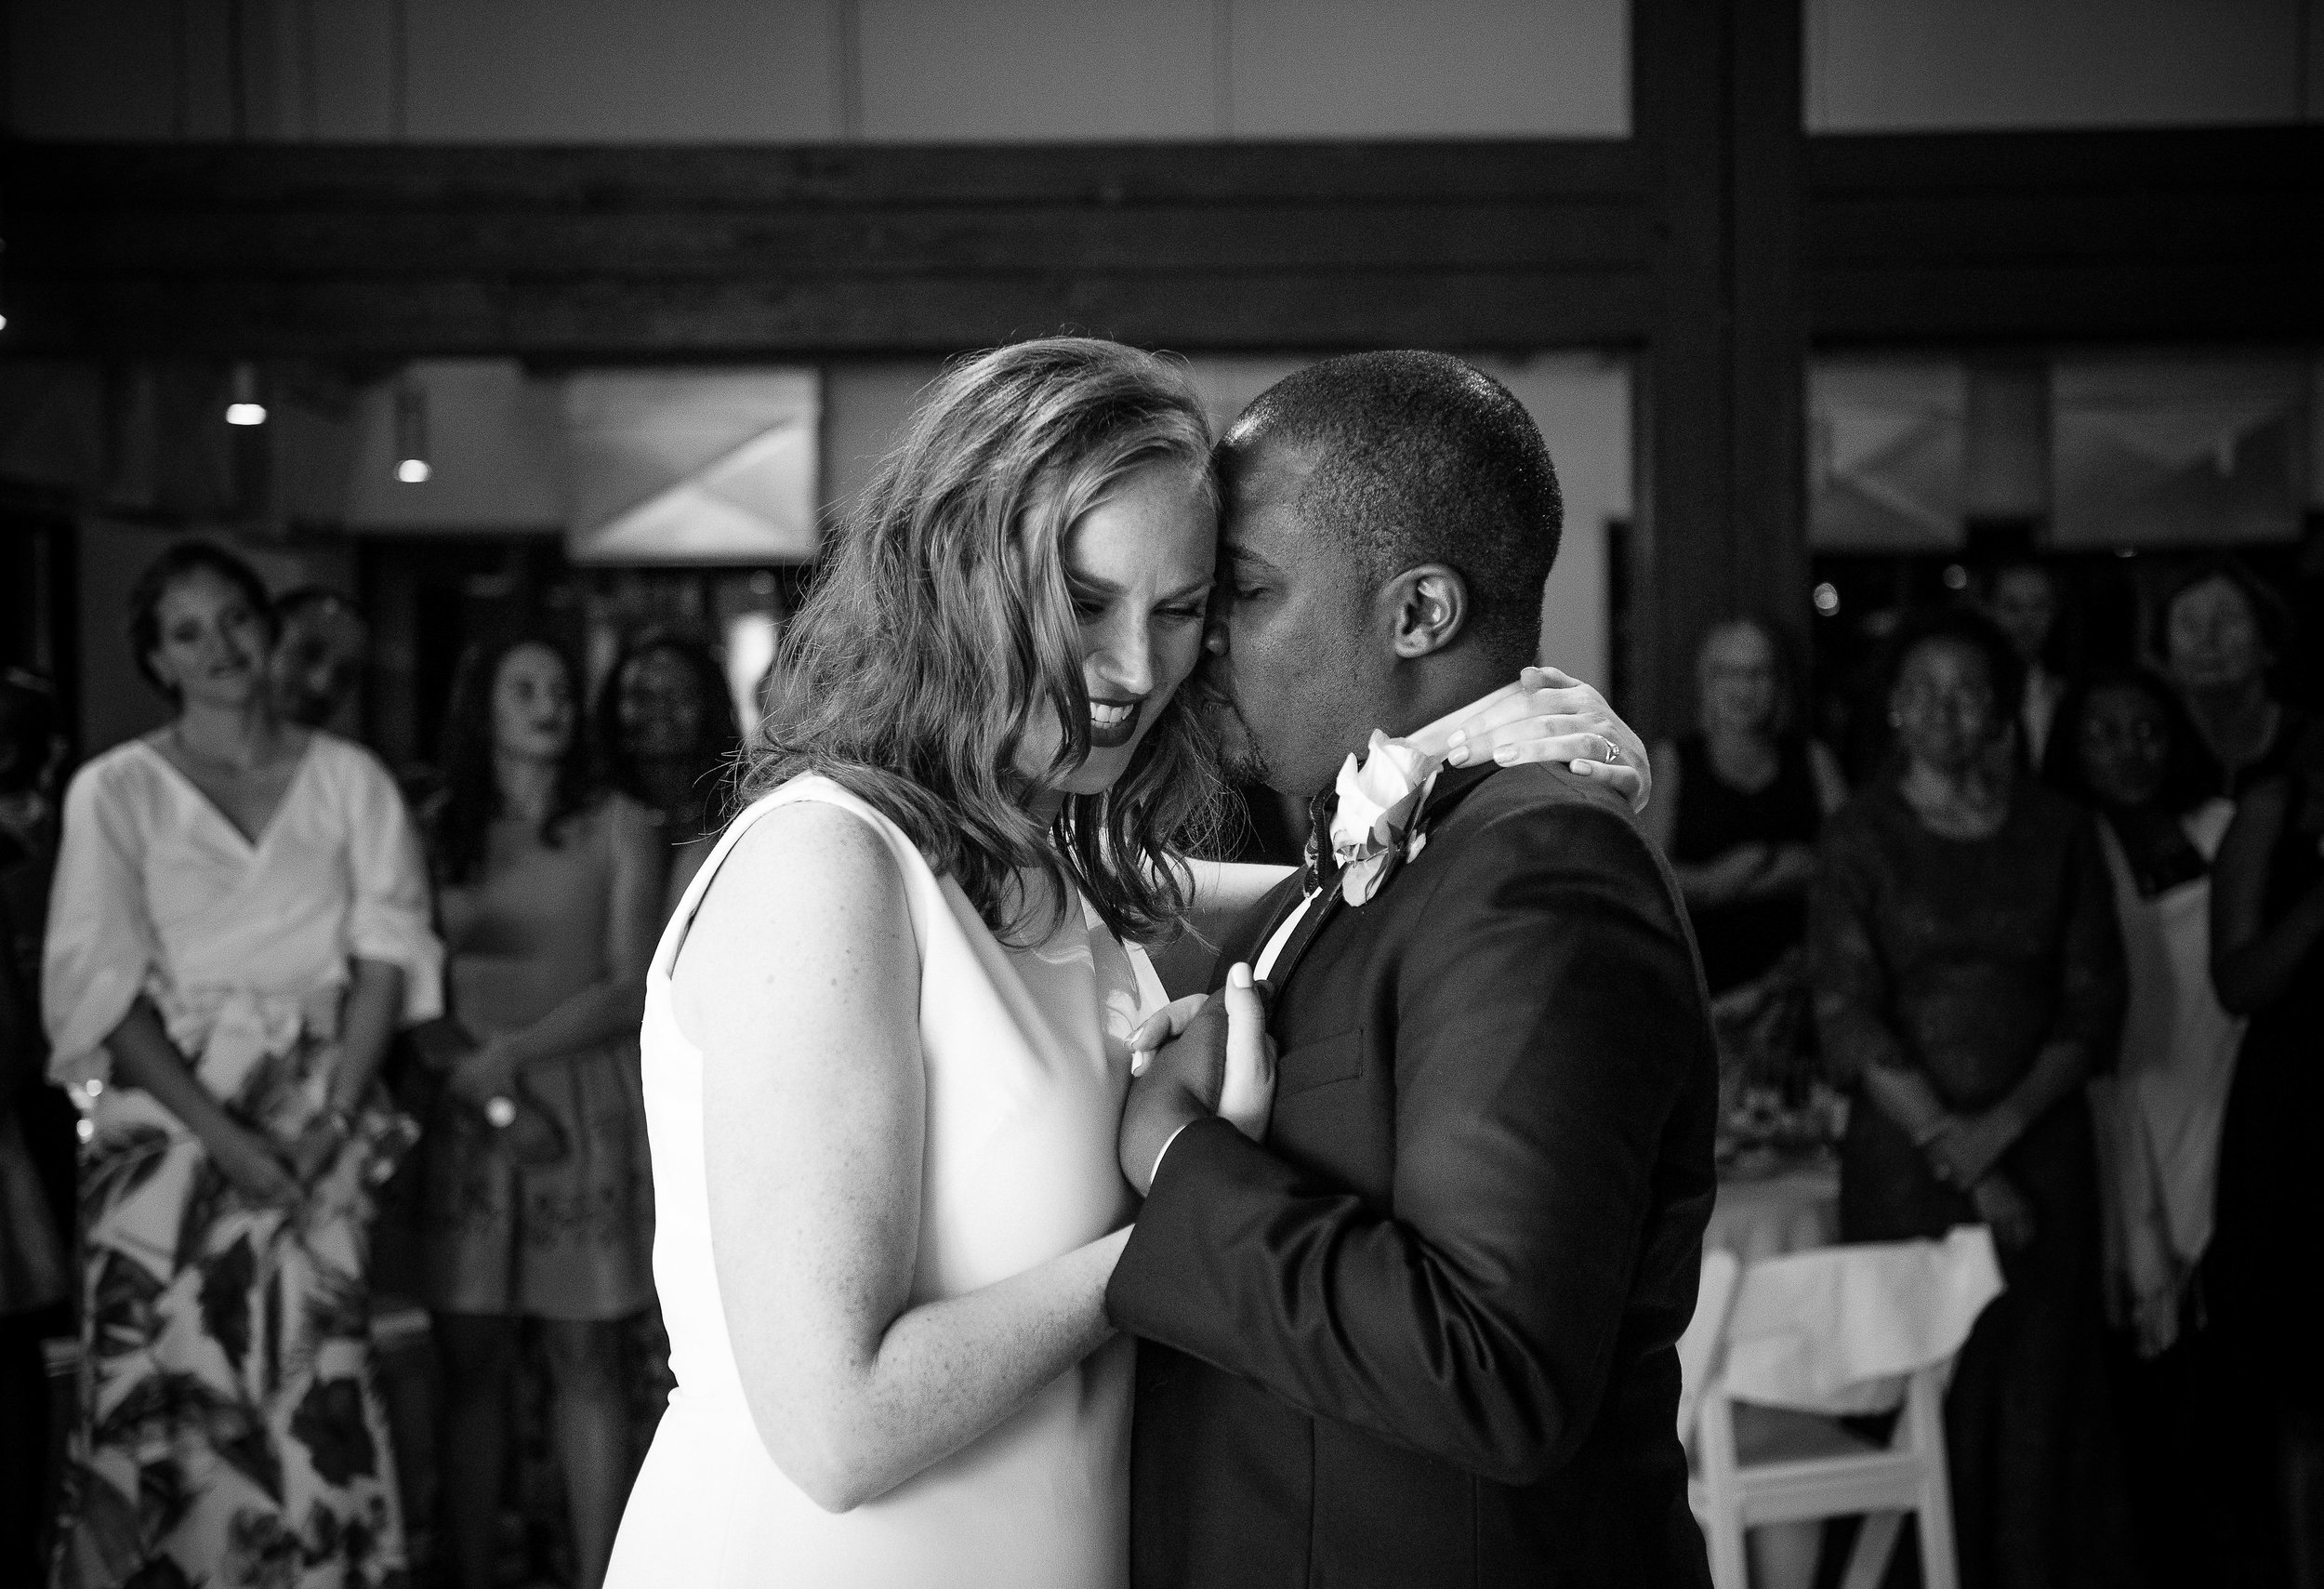 Christine_and_Leon_wedding_lana_nimmons_photography10672.jpg